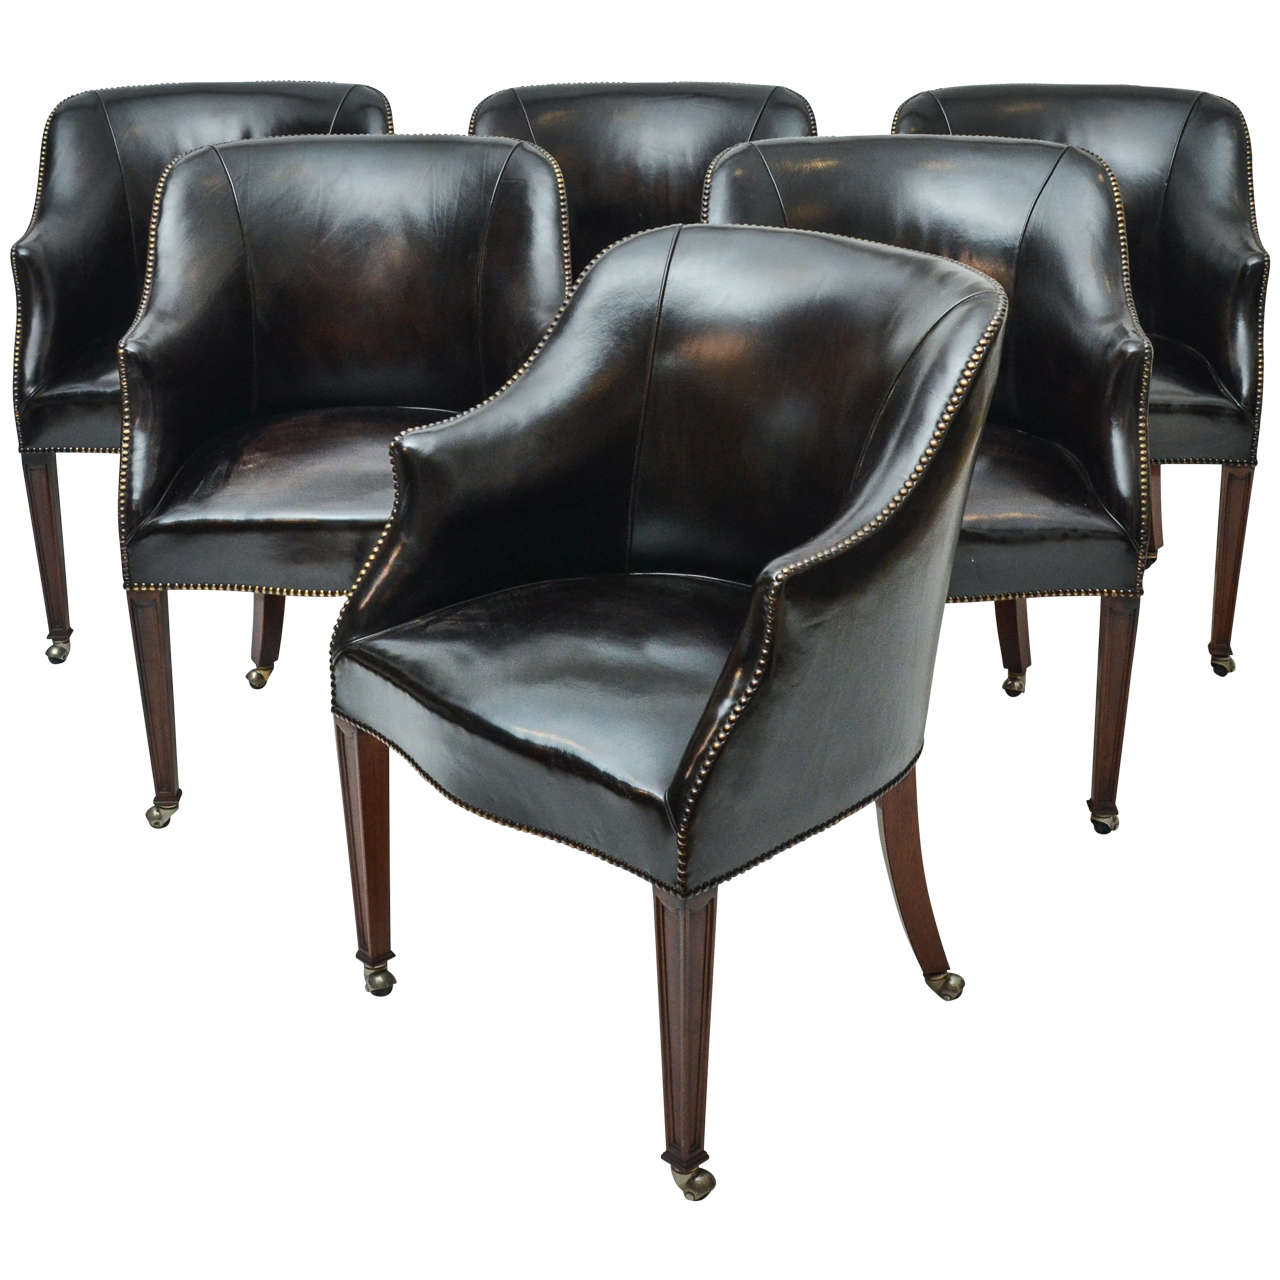 leather chairs of bath london clear for sale set six 1940s upholstered dining from